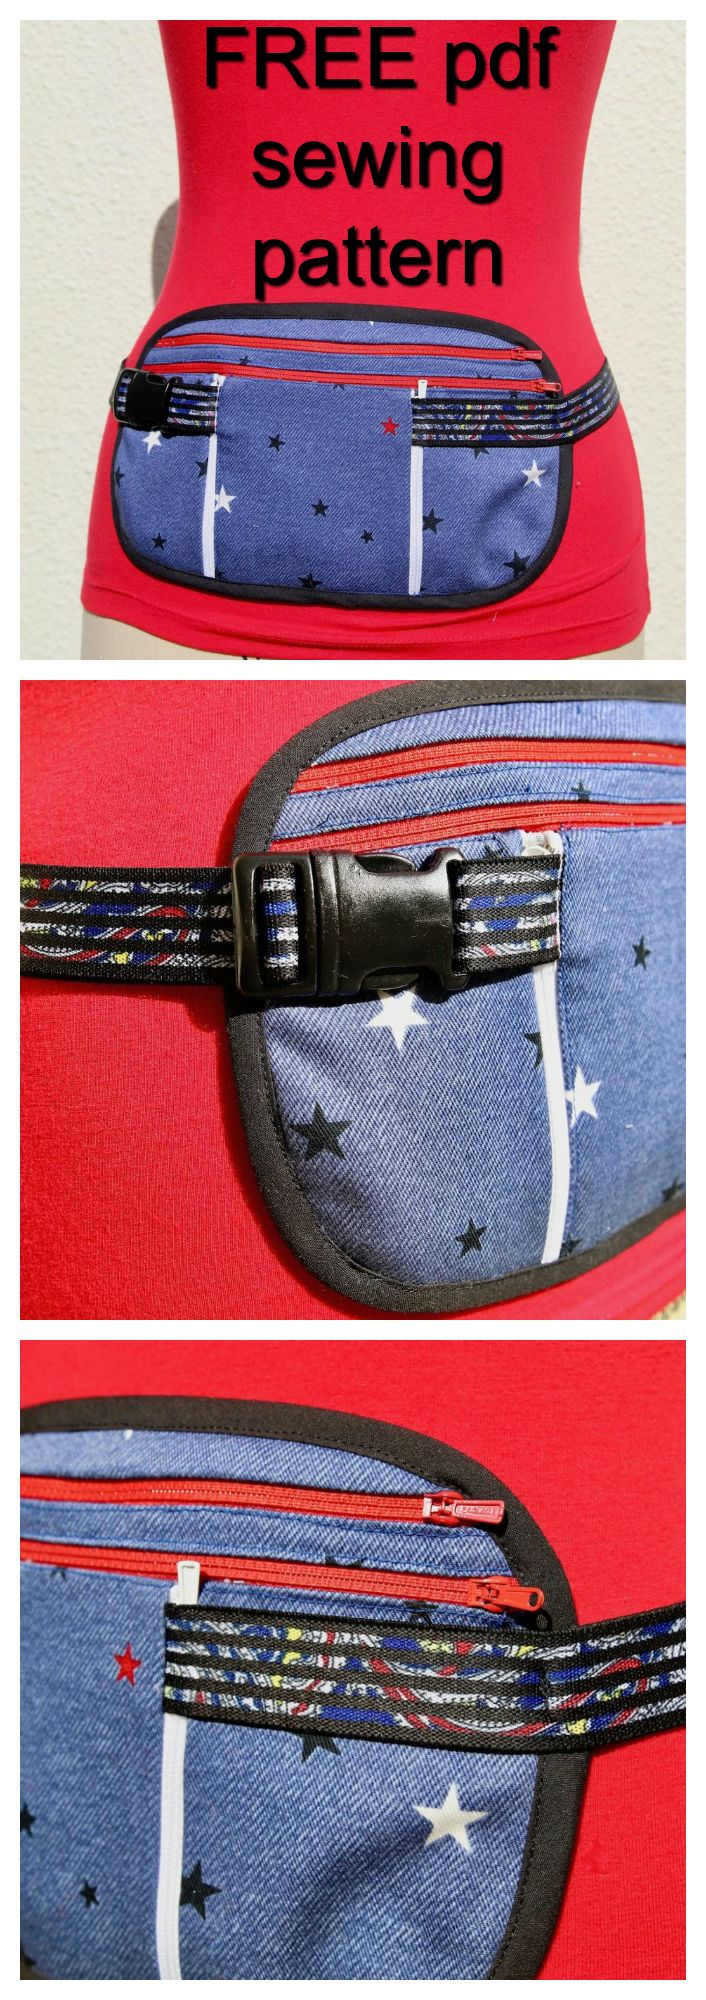 FREE downloadable pdf pattern for the DIY Money & Travel Belt. Here's a pattern for a running belt with pockets and an elasticized adjustable strap so you can tailor it to any waist size. This pouch could also be called a money belt, travel belt or sports belt. Place the pouch on your front or back and cover it with a T-shirt and no one will even know it is there. There is enough room for a big phone, money, keys and even coins.